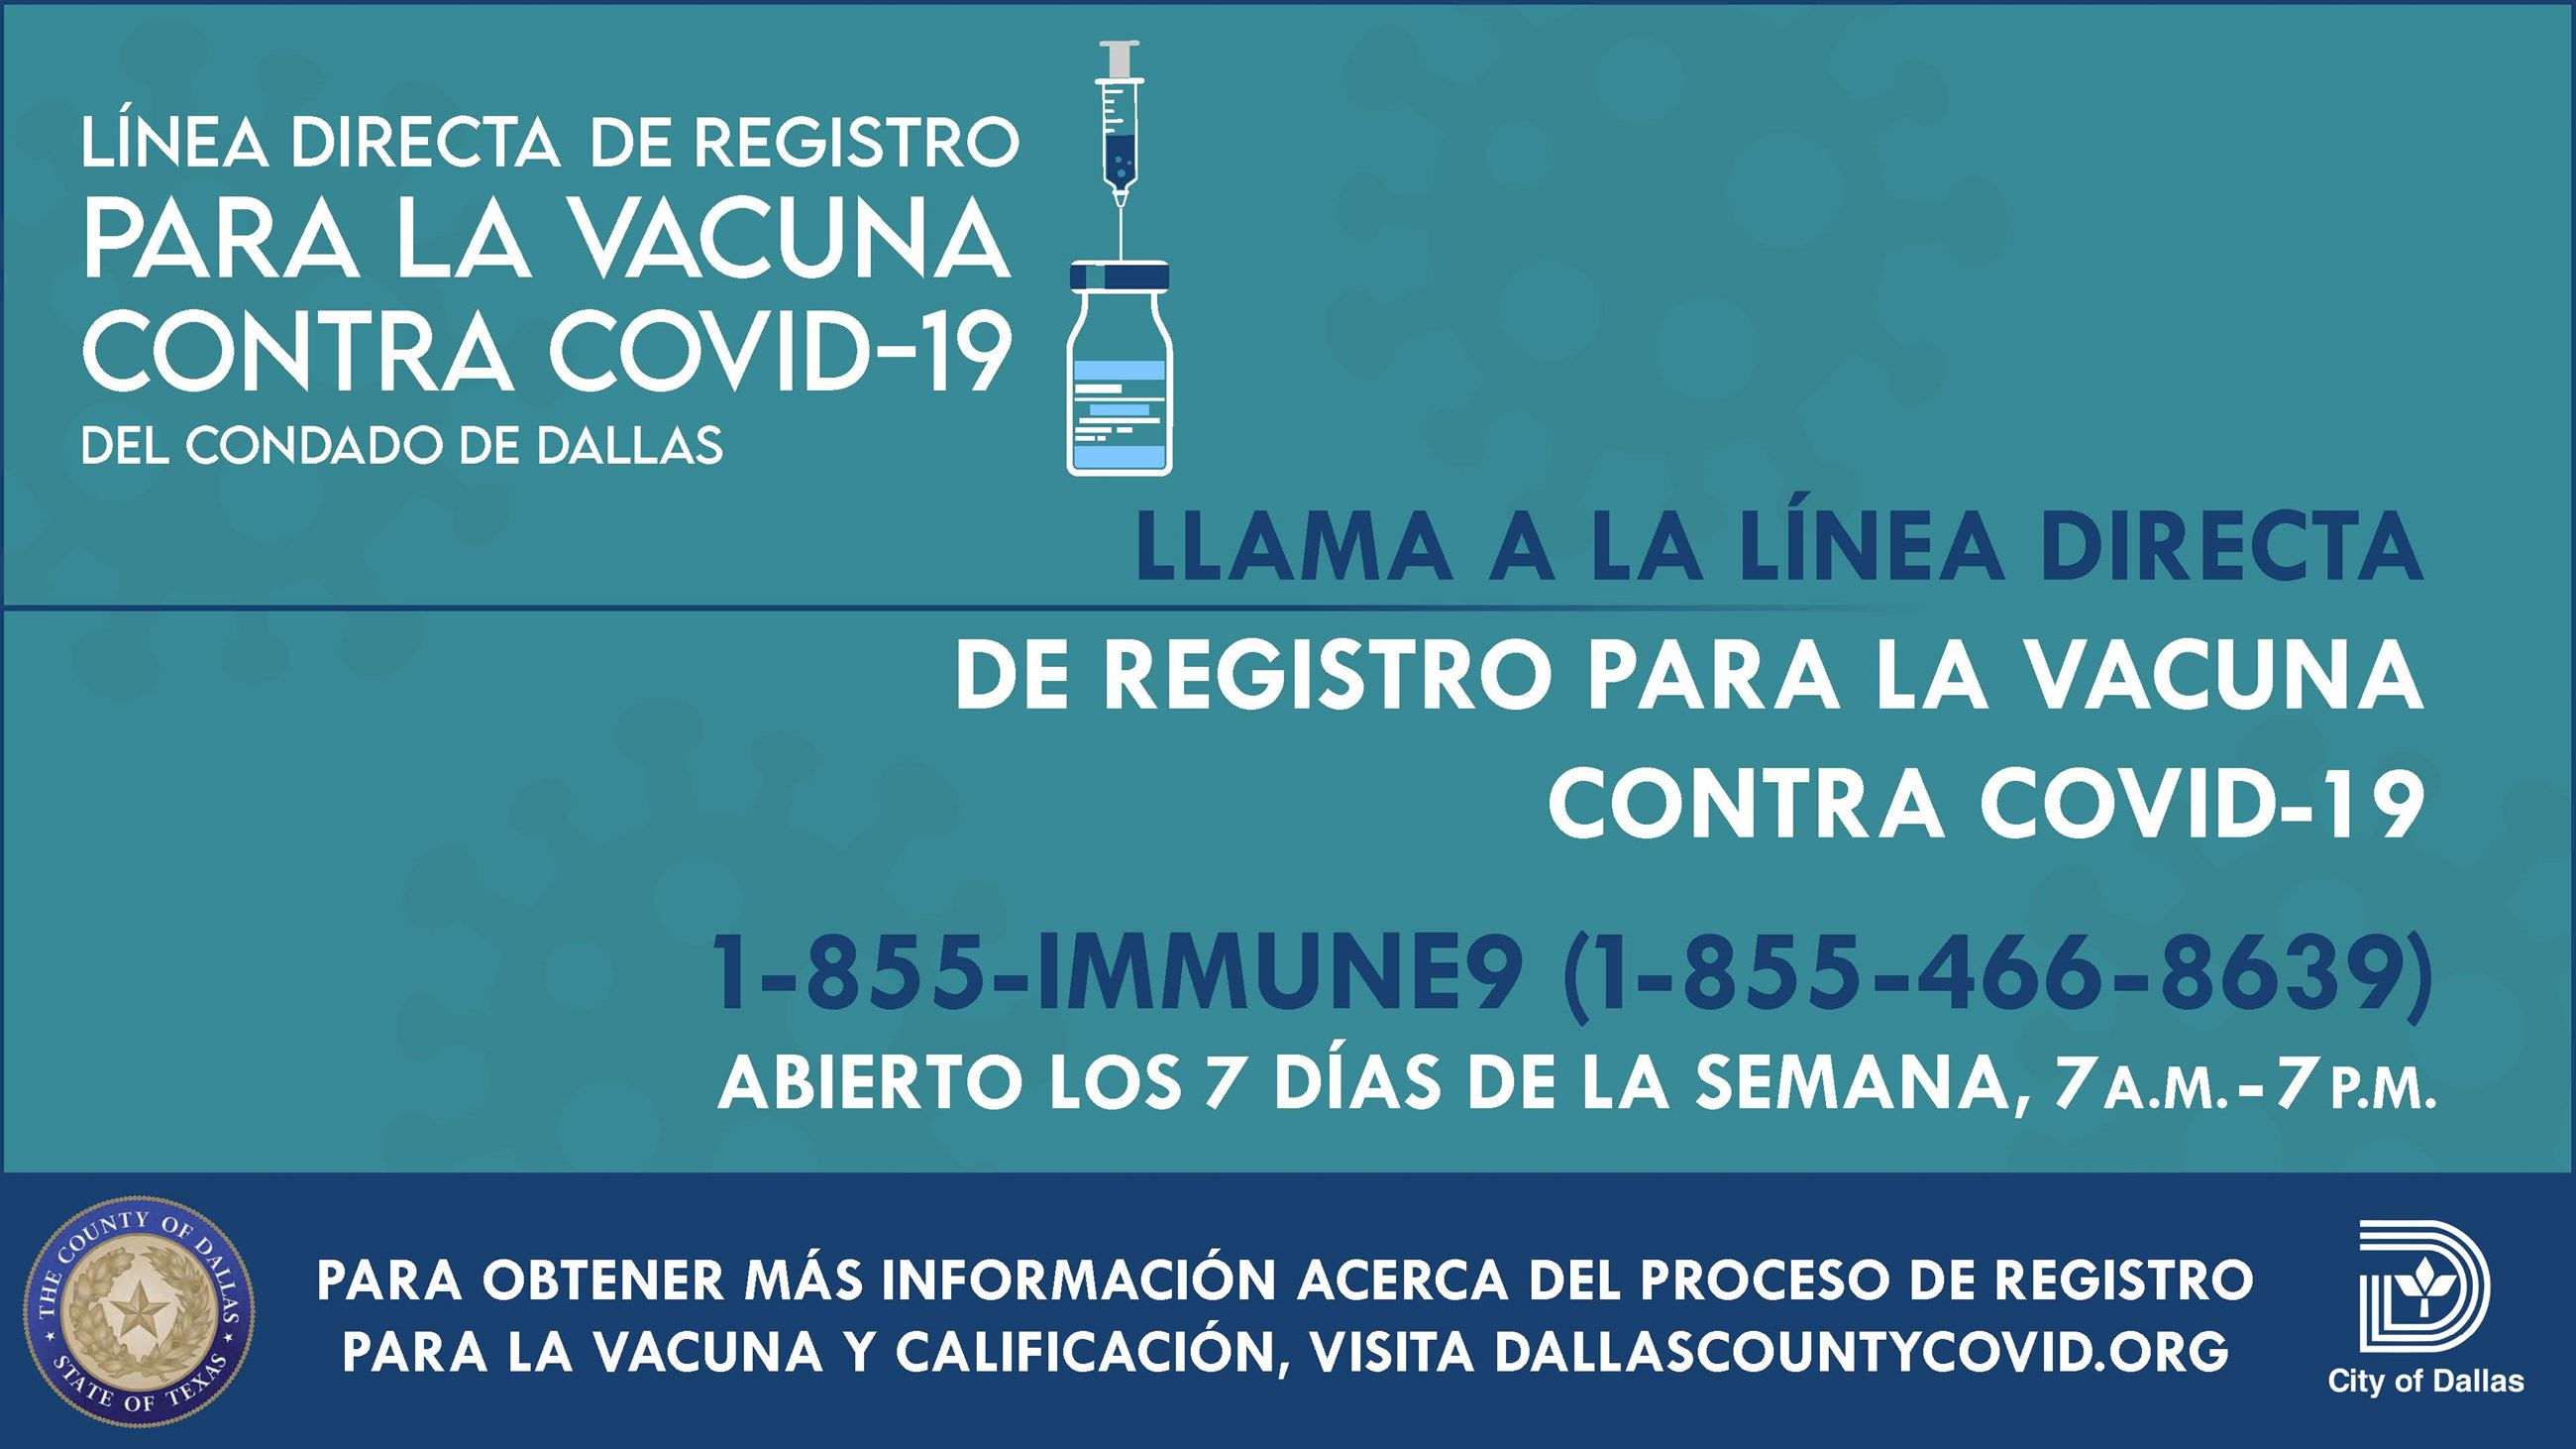 Dallas County COVID-19 Vaccine Registration Hotline: Spanish